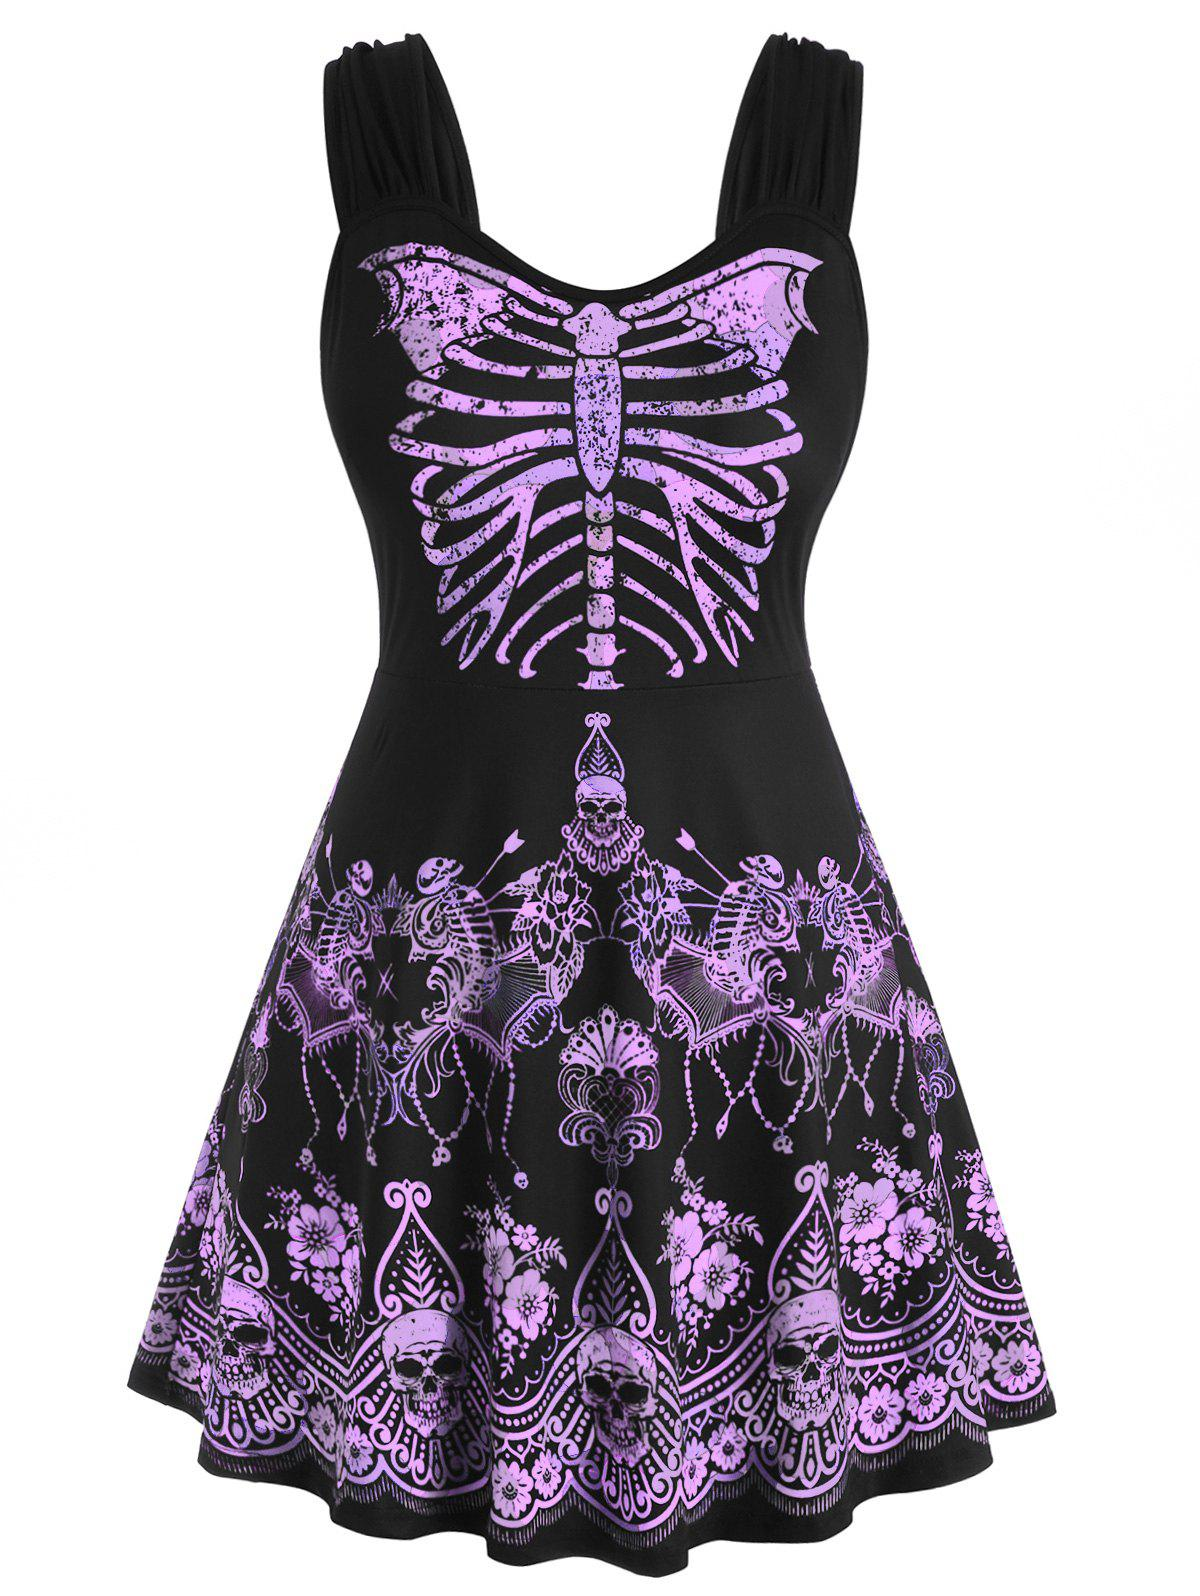 New Skull Floral Butterfly Skeleton Halloween Plus Size Tank Top